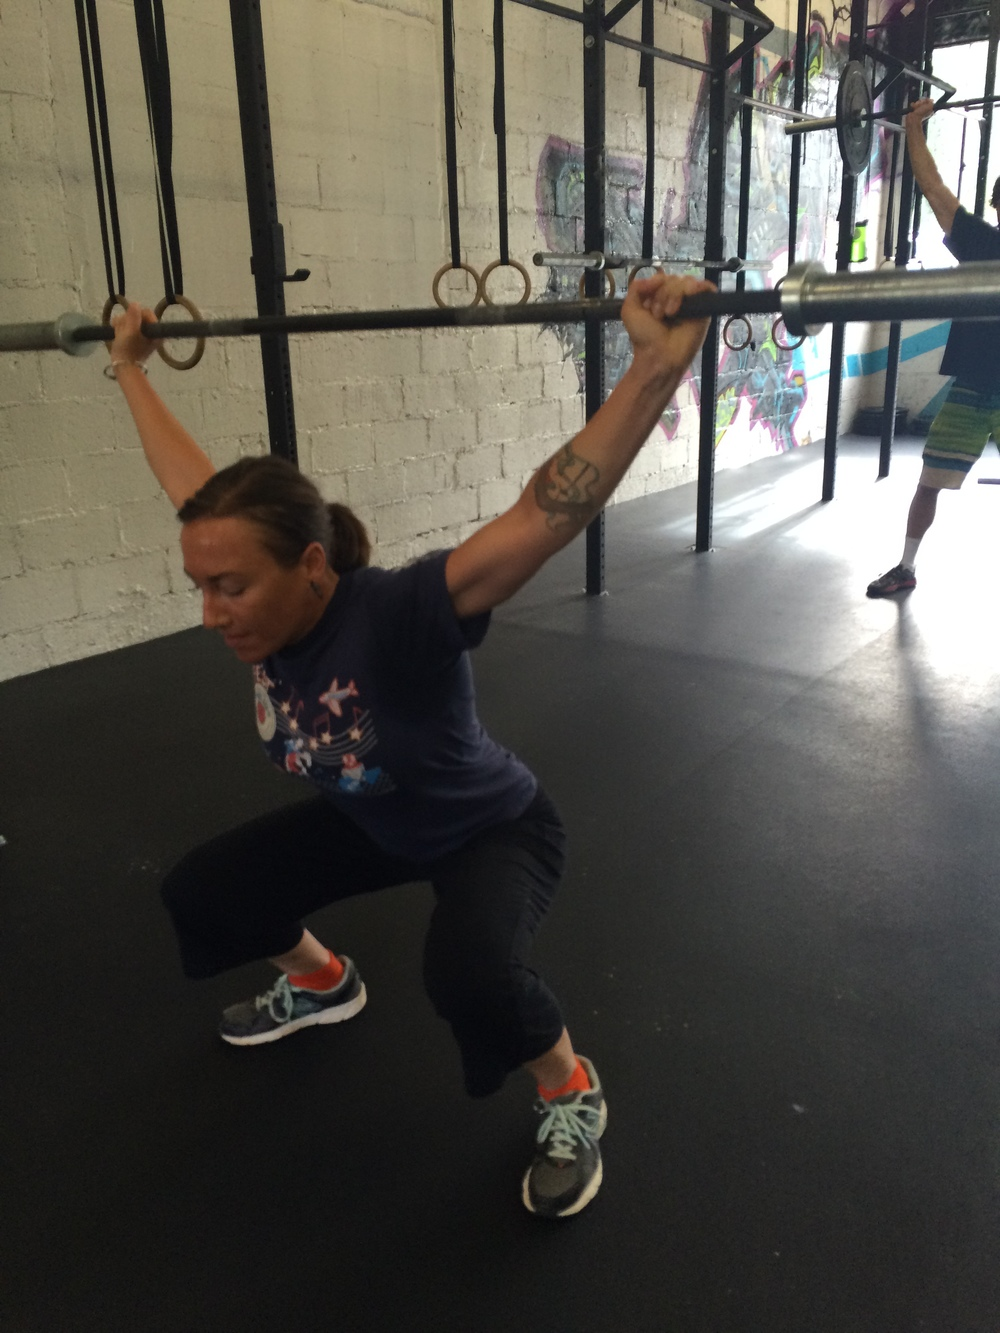 Darcy has been relentless in her pursuit of a solid overhead squat. I wish we had before and after pictures here, but her willingness to work with pvc pipe and training bars to move well is paying off. solid foundations build solid results.